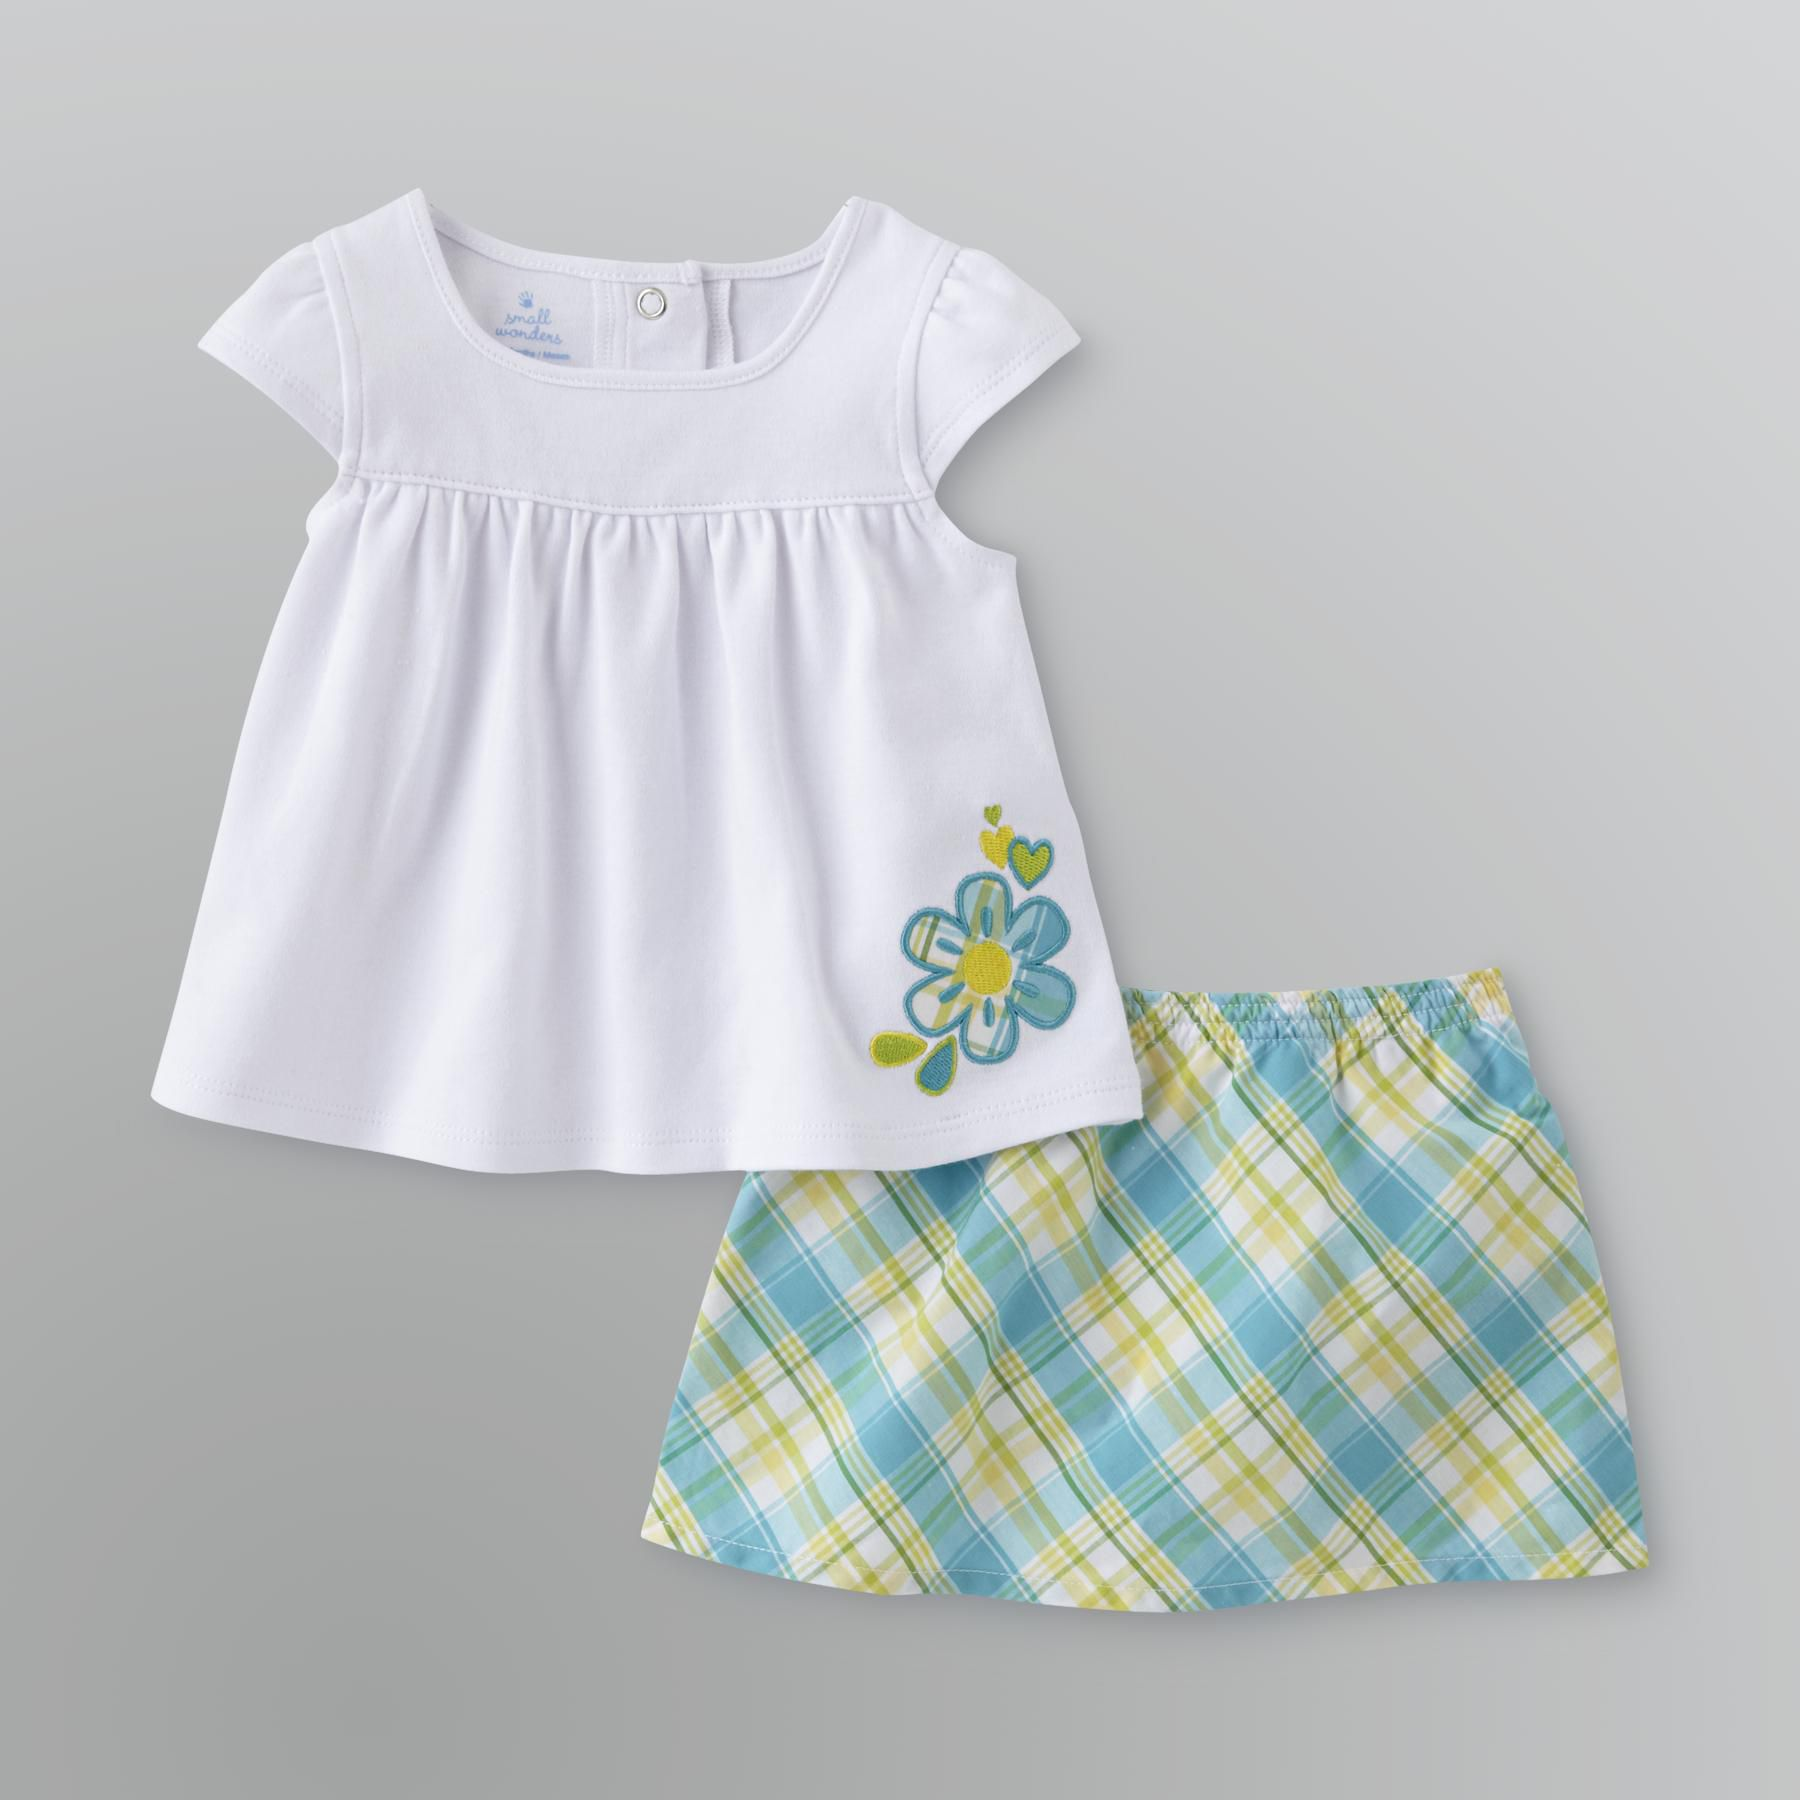 Small Wonders Newborn Infant Girl s Gingham Skirt Set - Flower